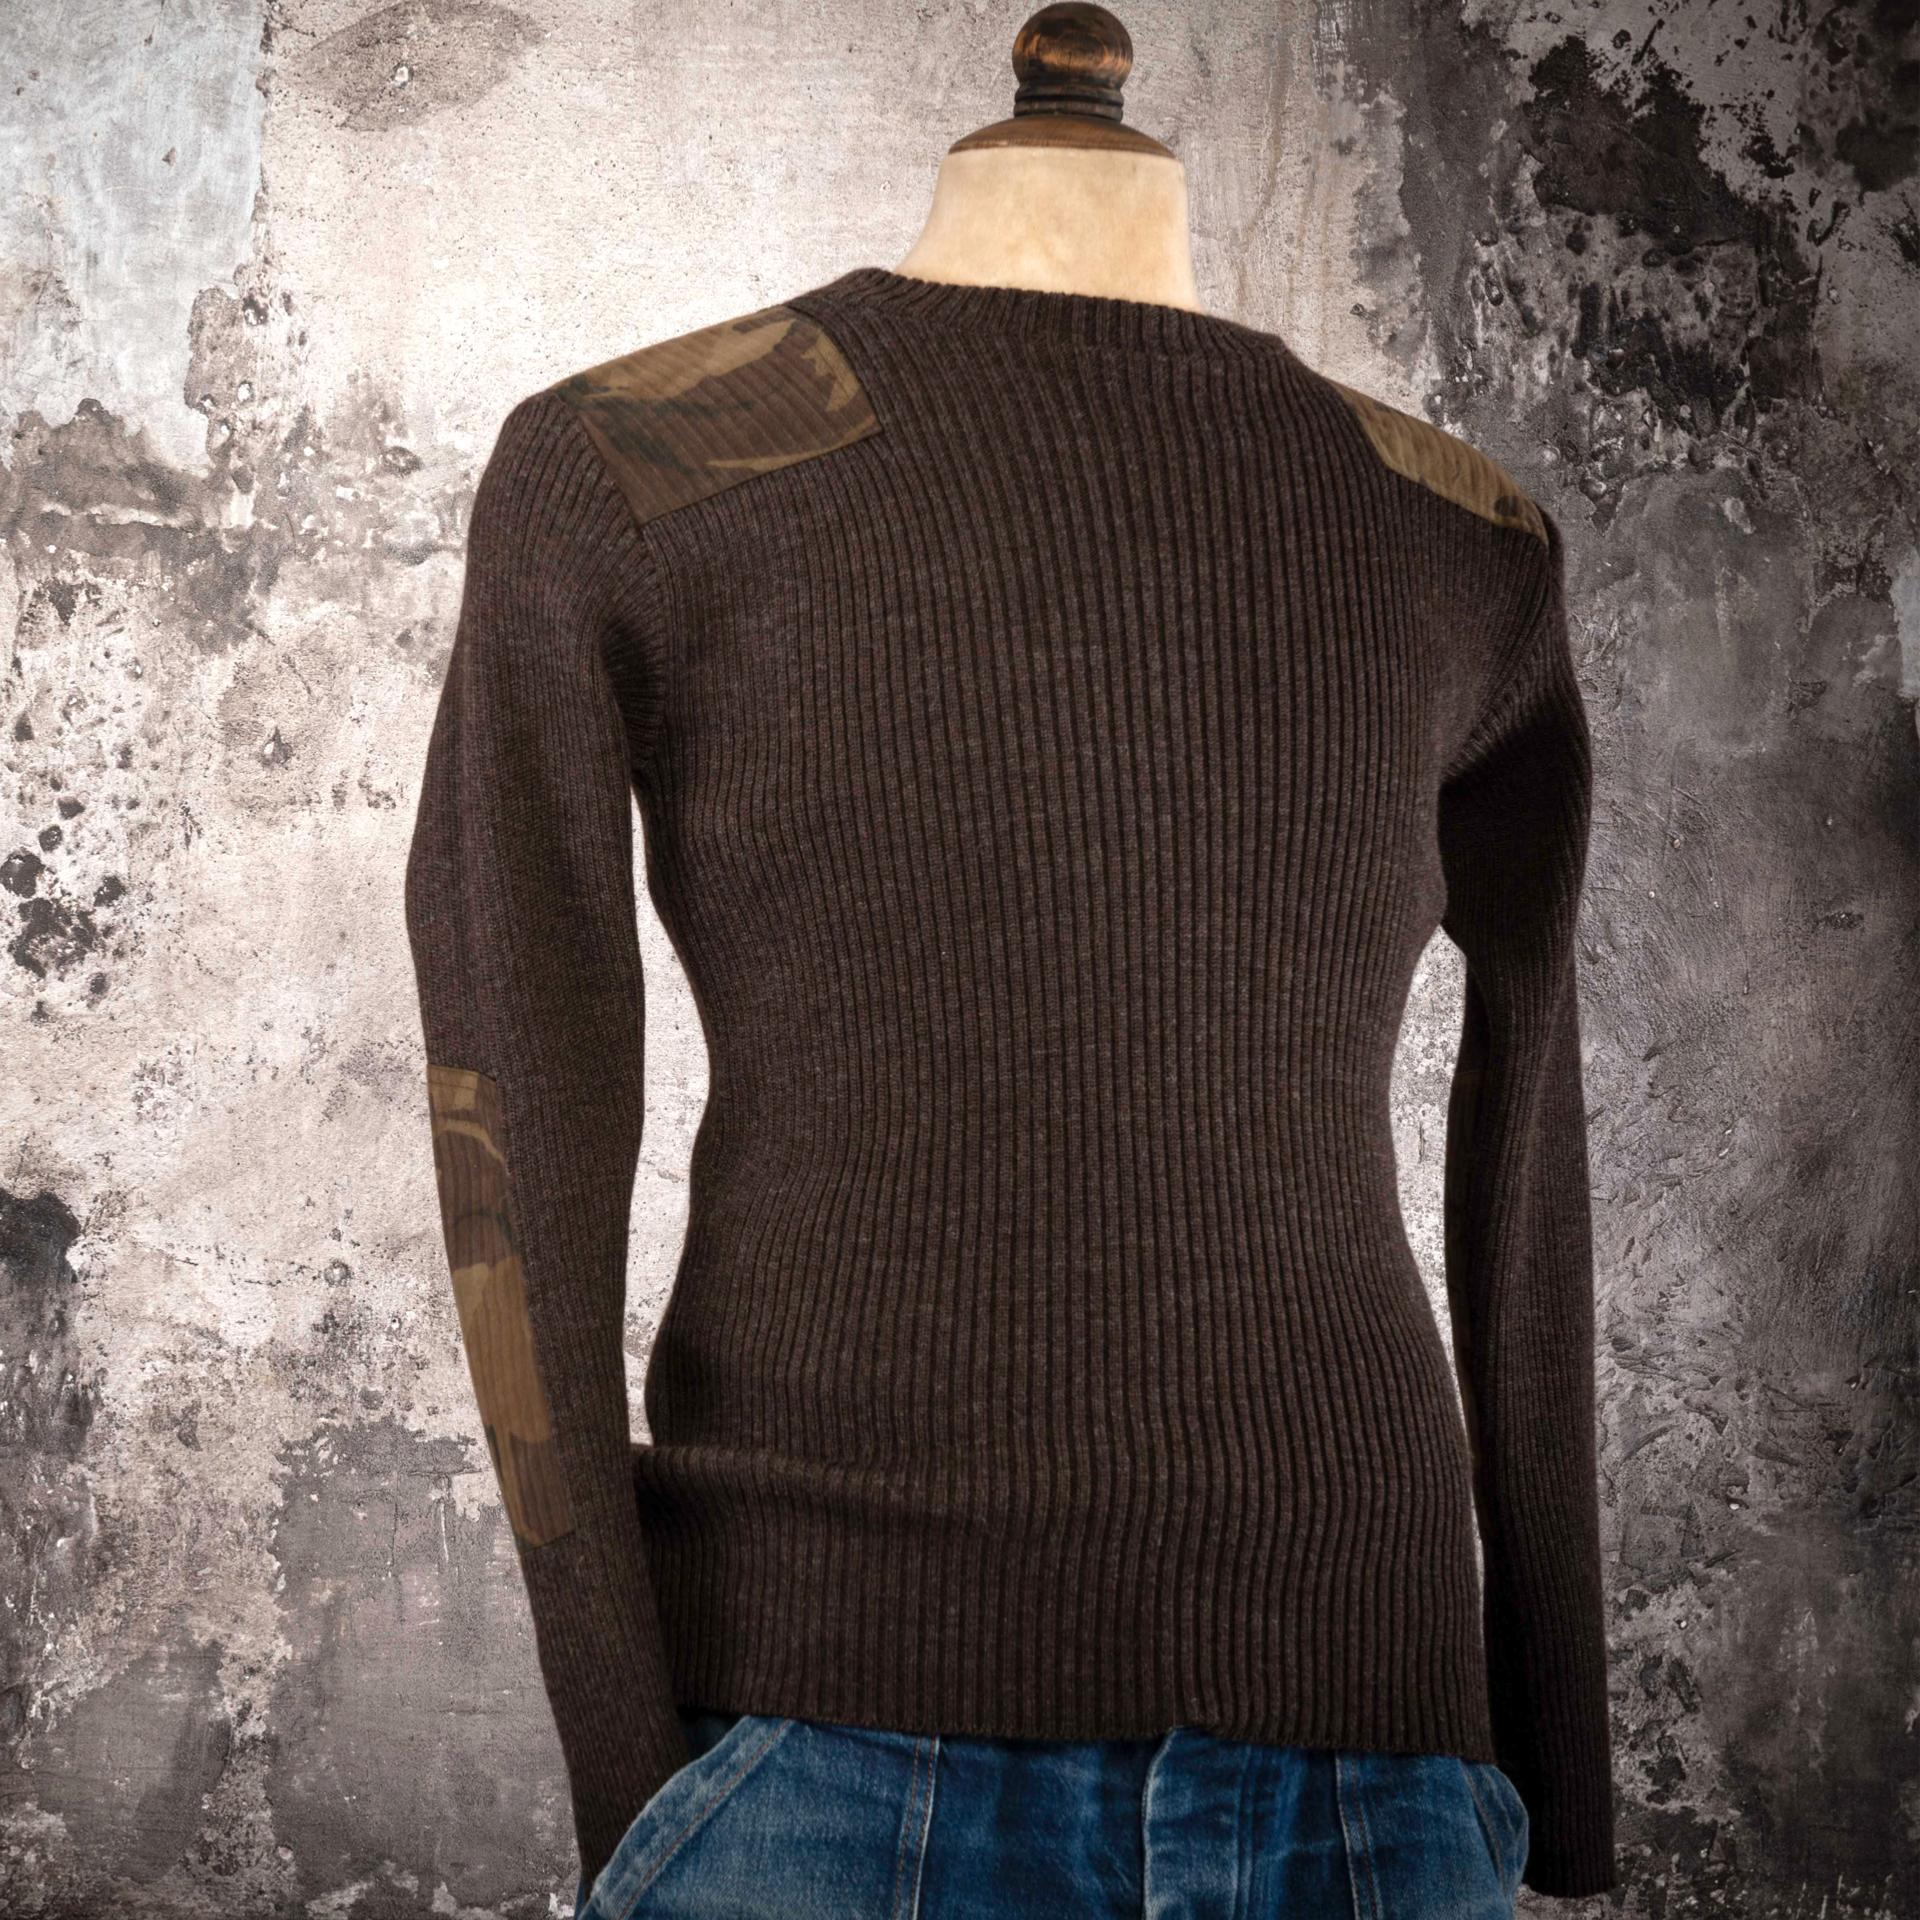 THE BROWN COMMANDO KNITWEAR